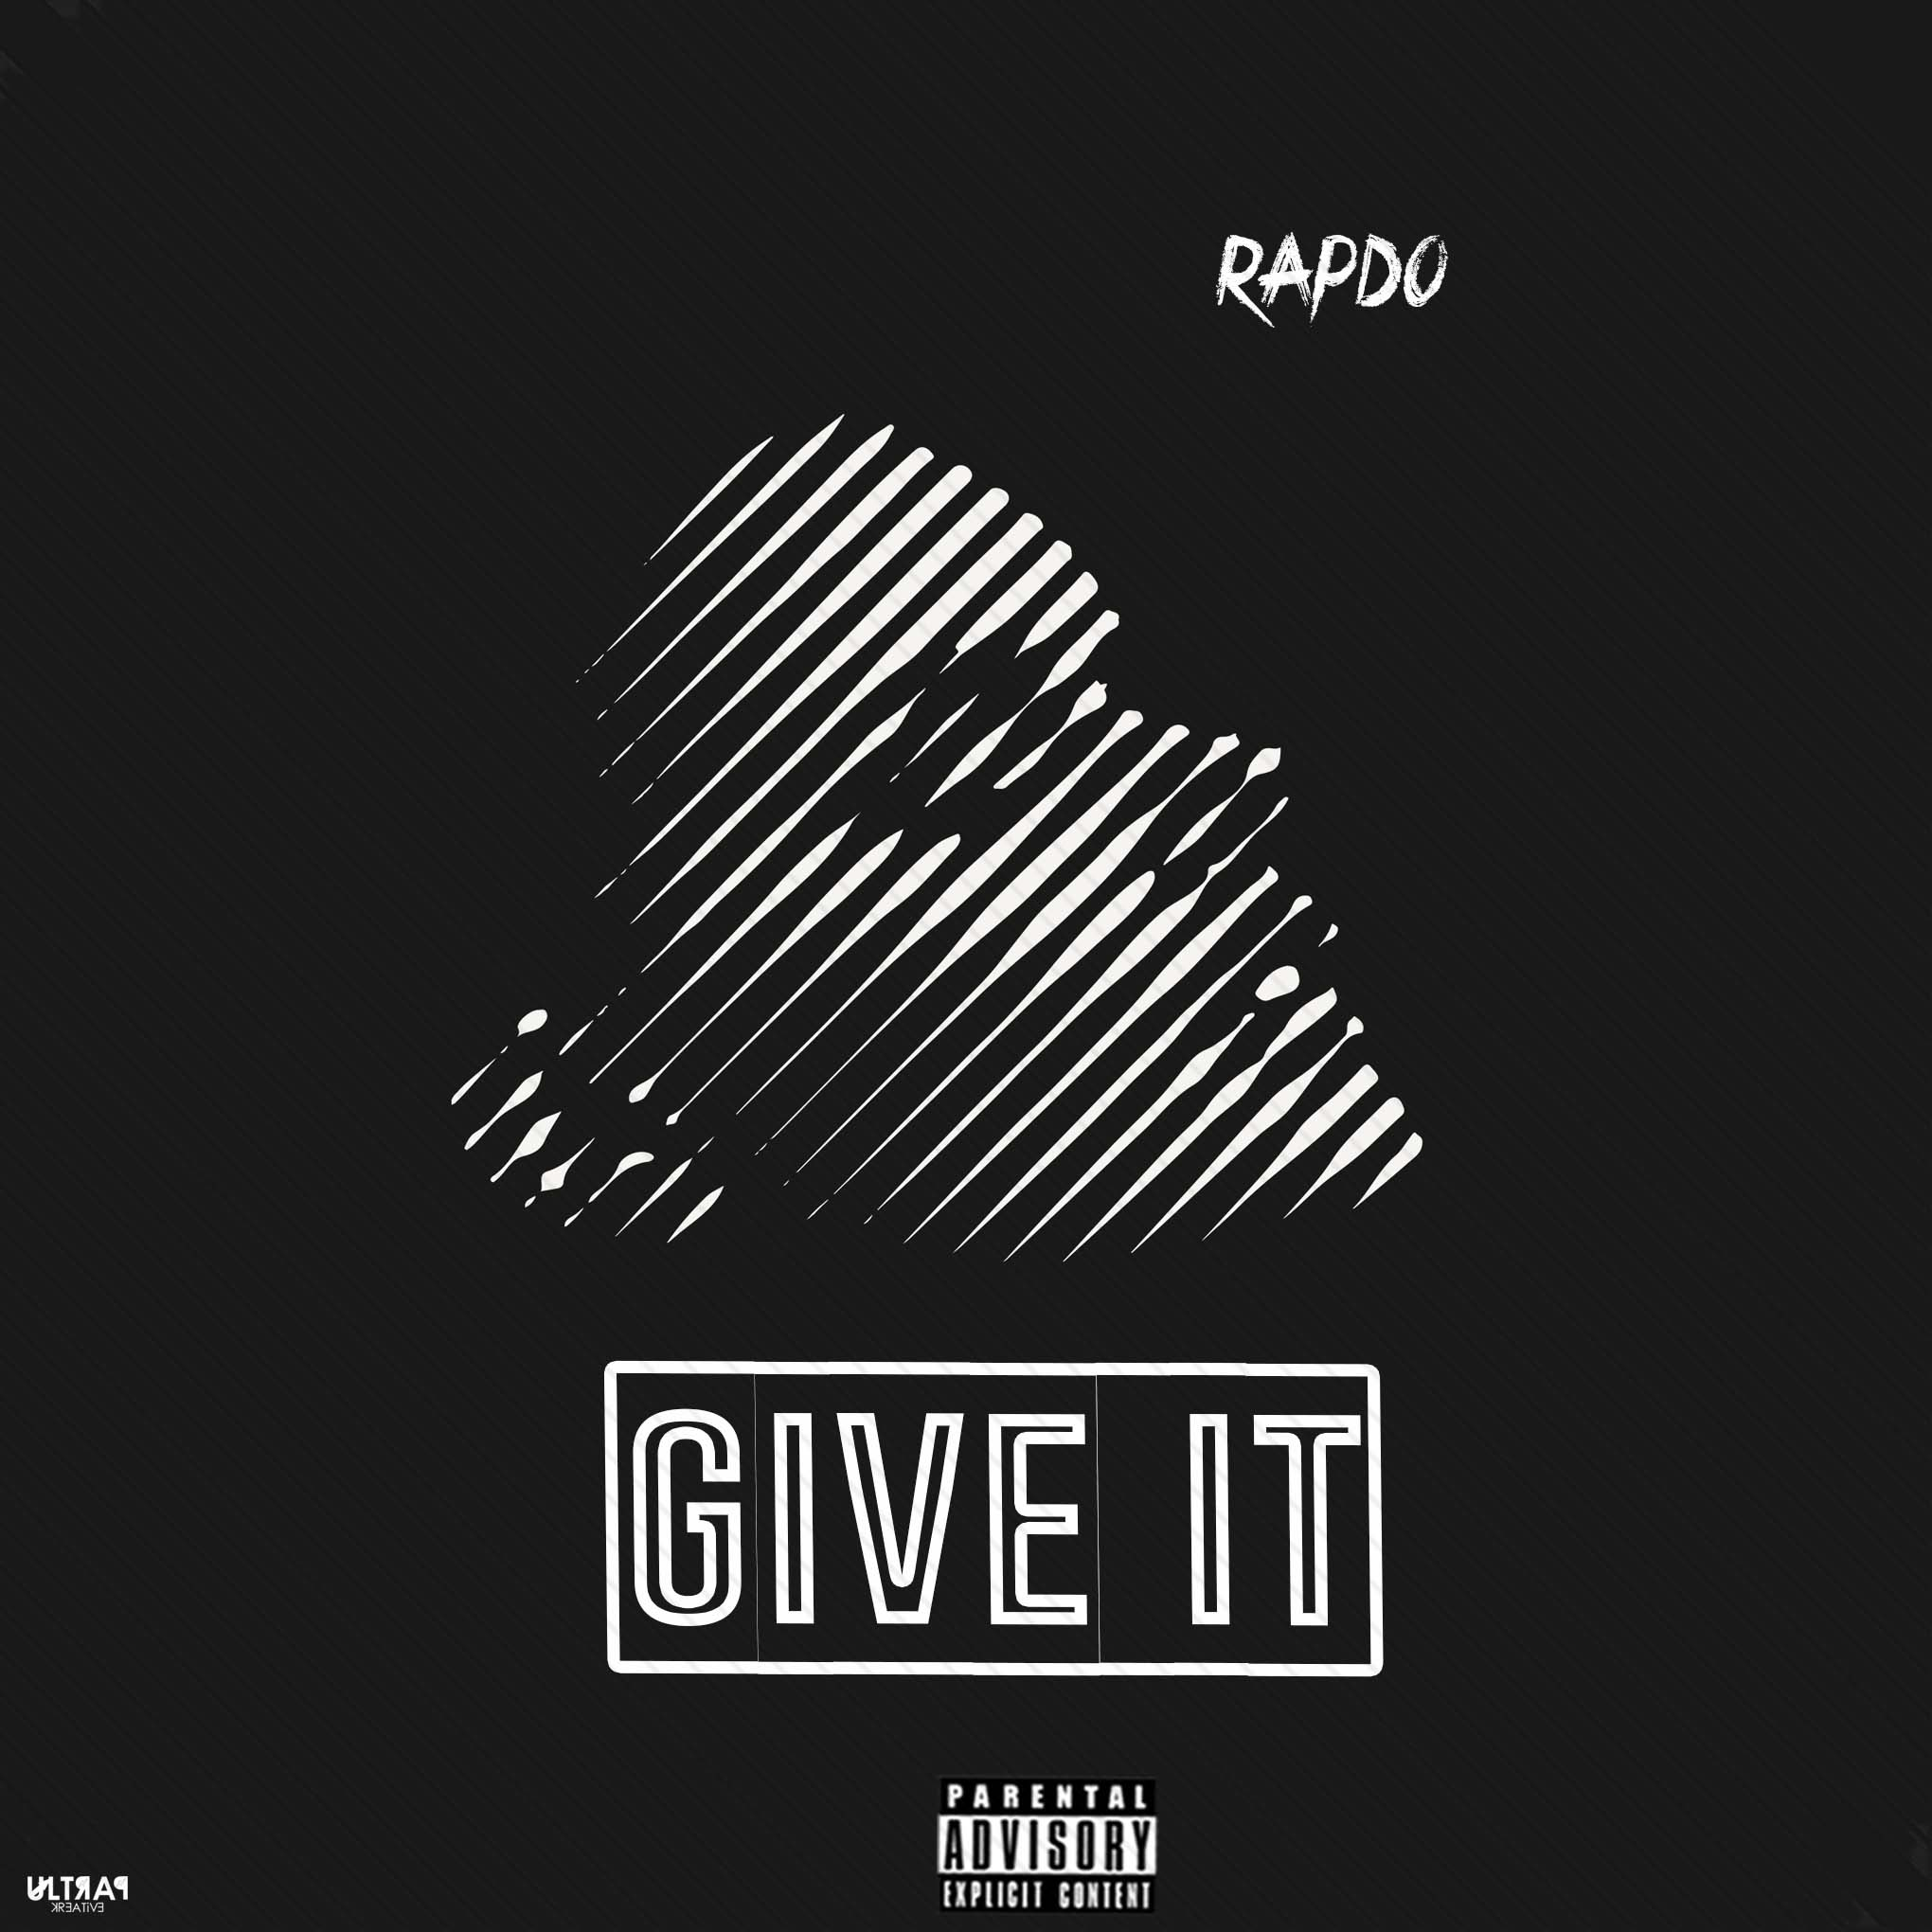 Rapdo - Give It